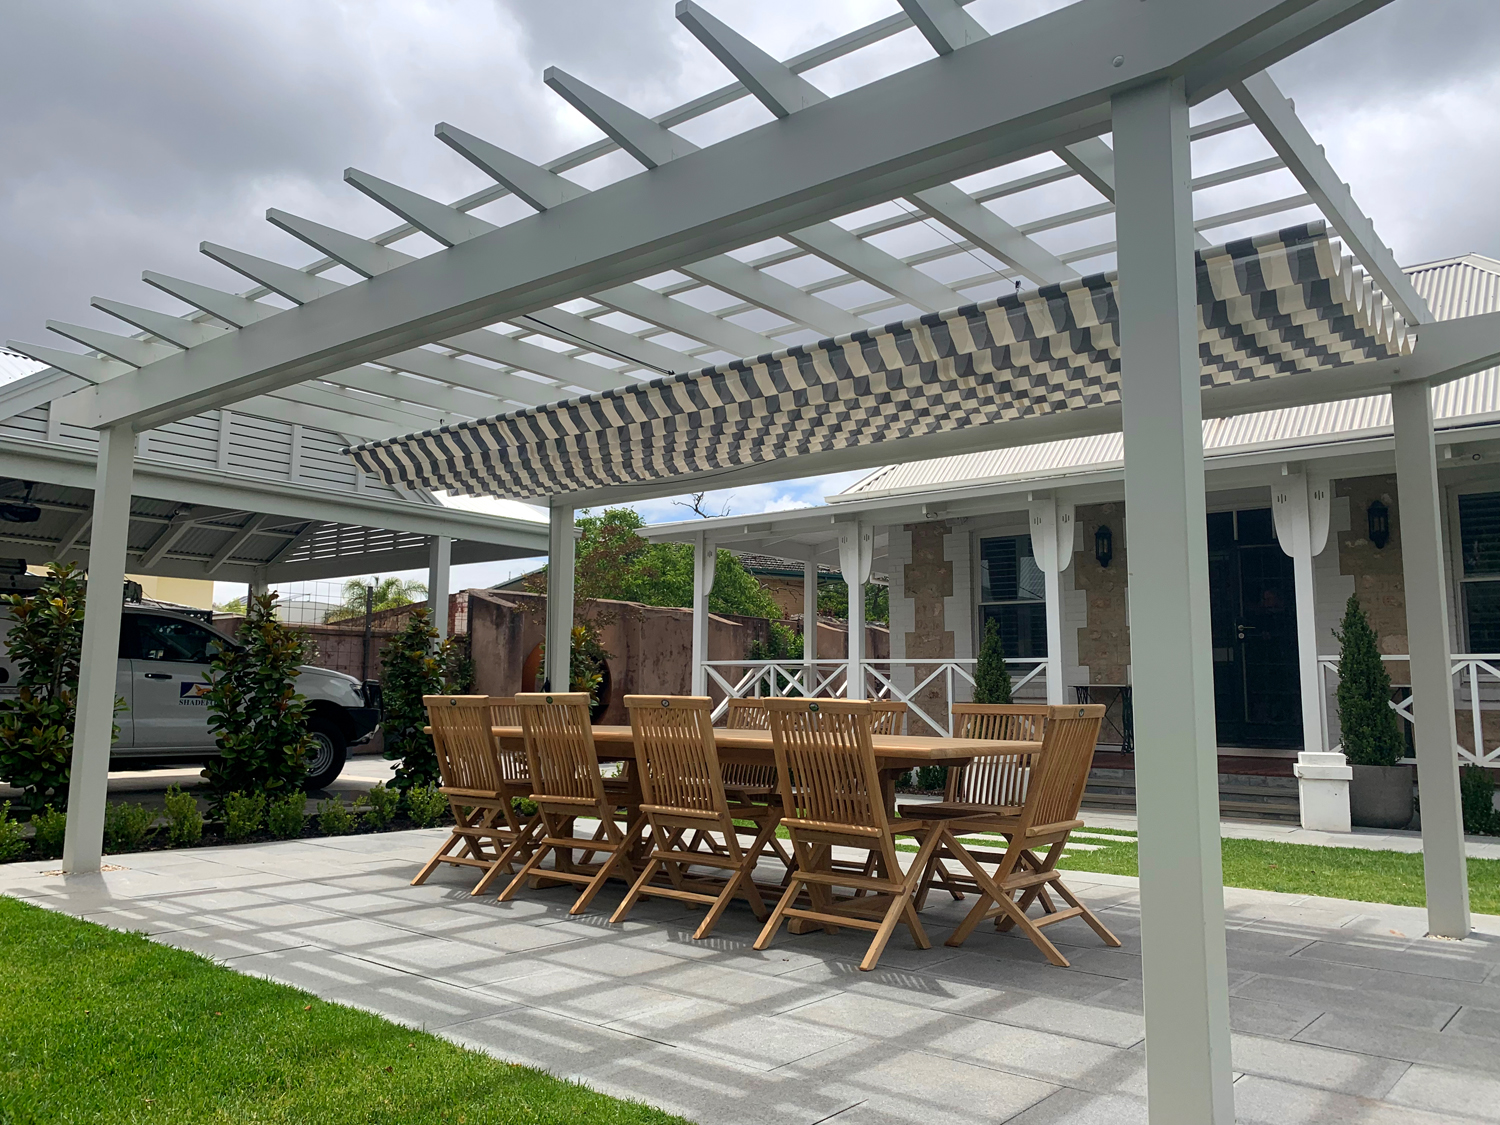 Contemporary shade for a traditional setting: Walkerville project